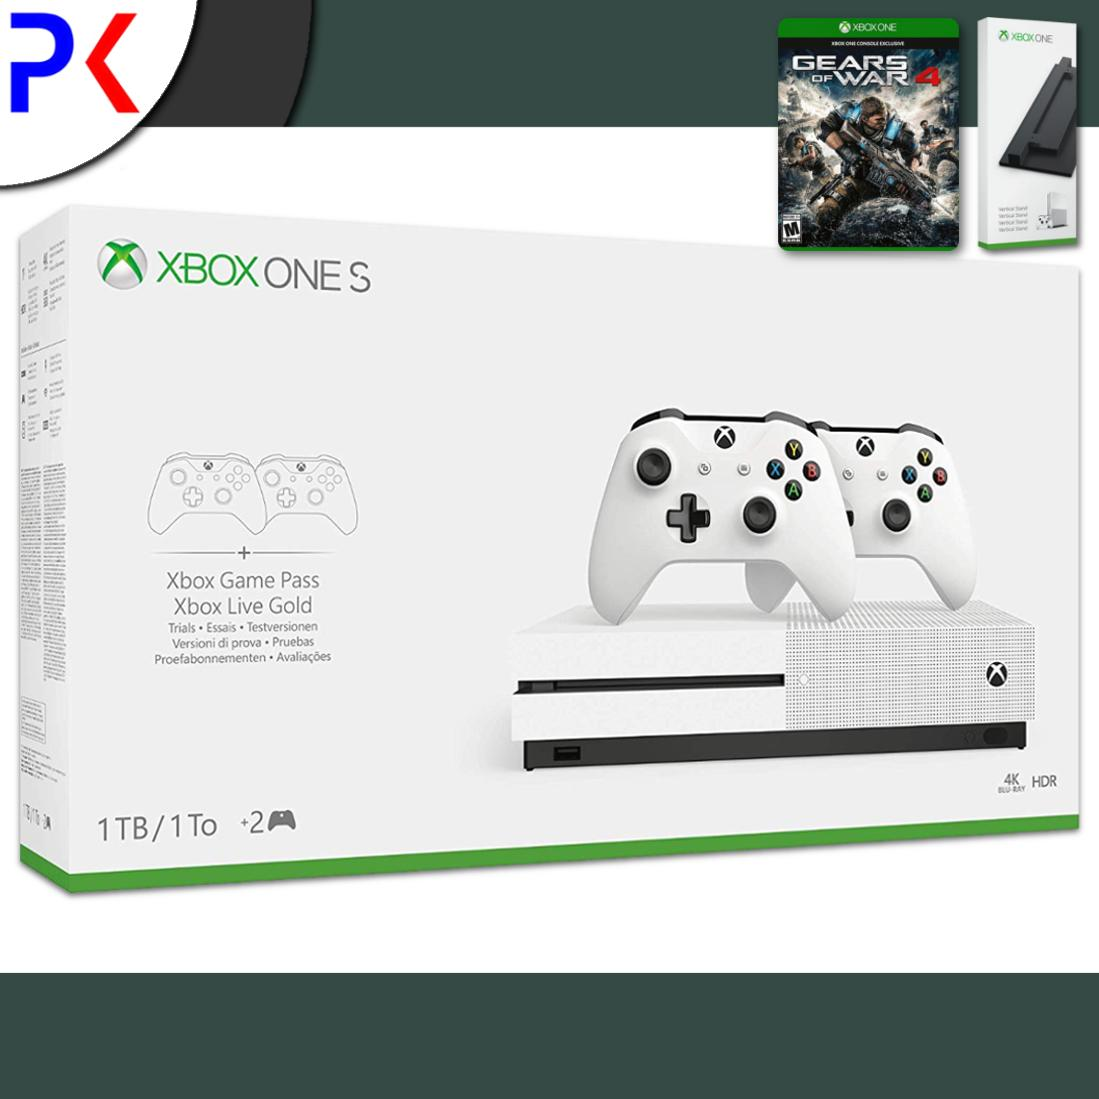 Xbox One S 1TB (ASIA) Two Controller Bundle + Gears of War 4 + Free Vertical Stand